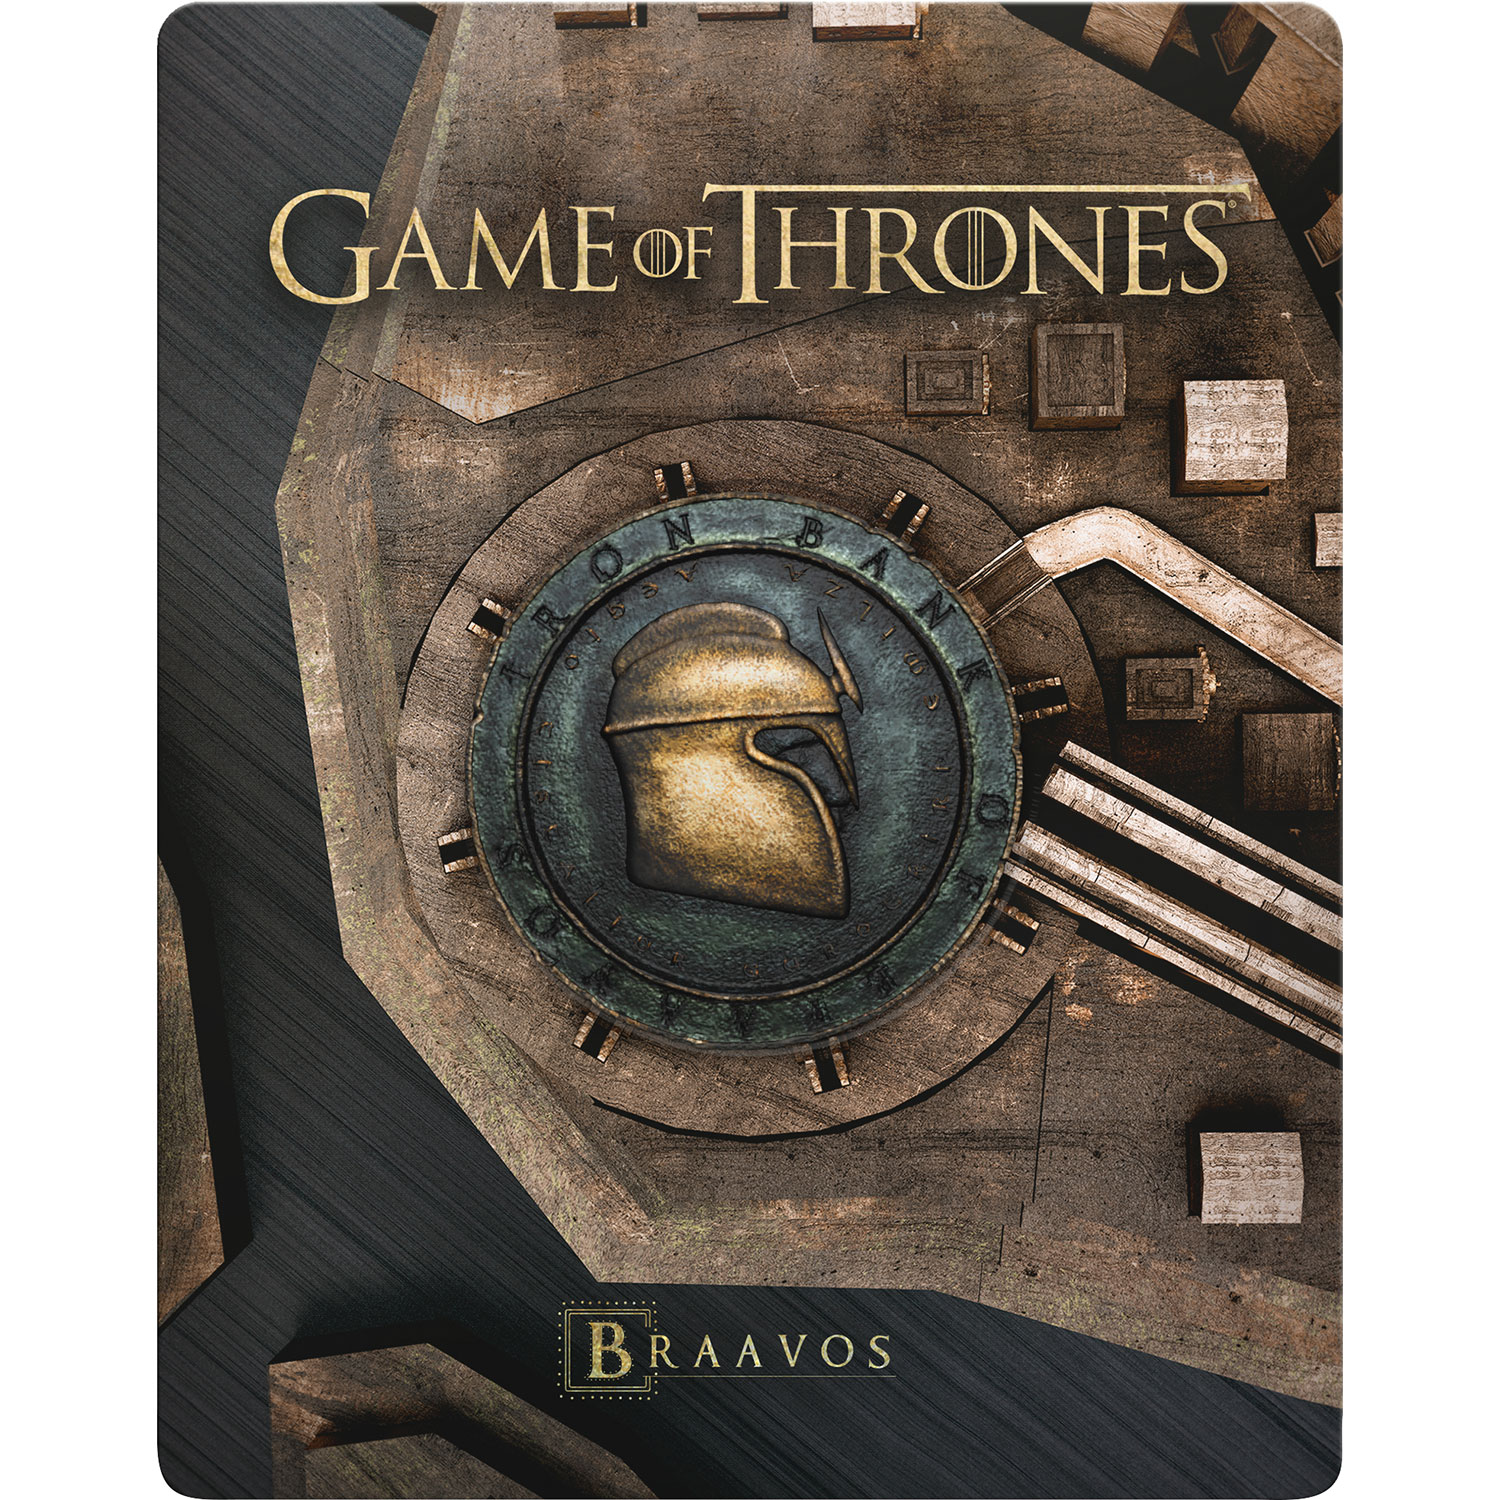 Game of Thrones: The